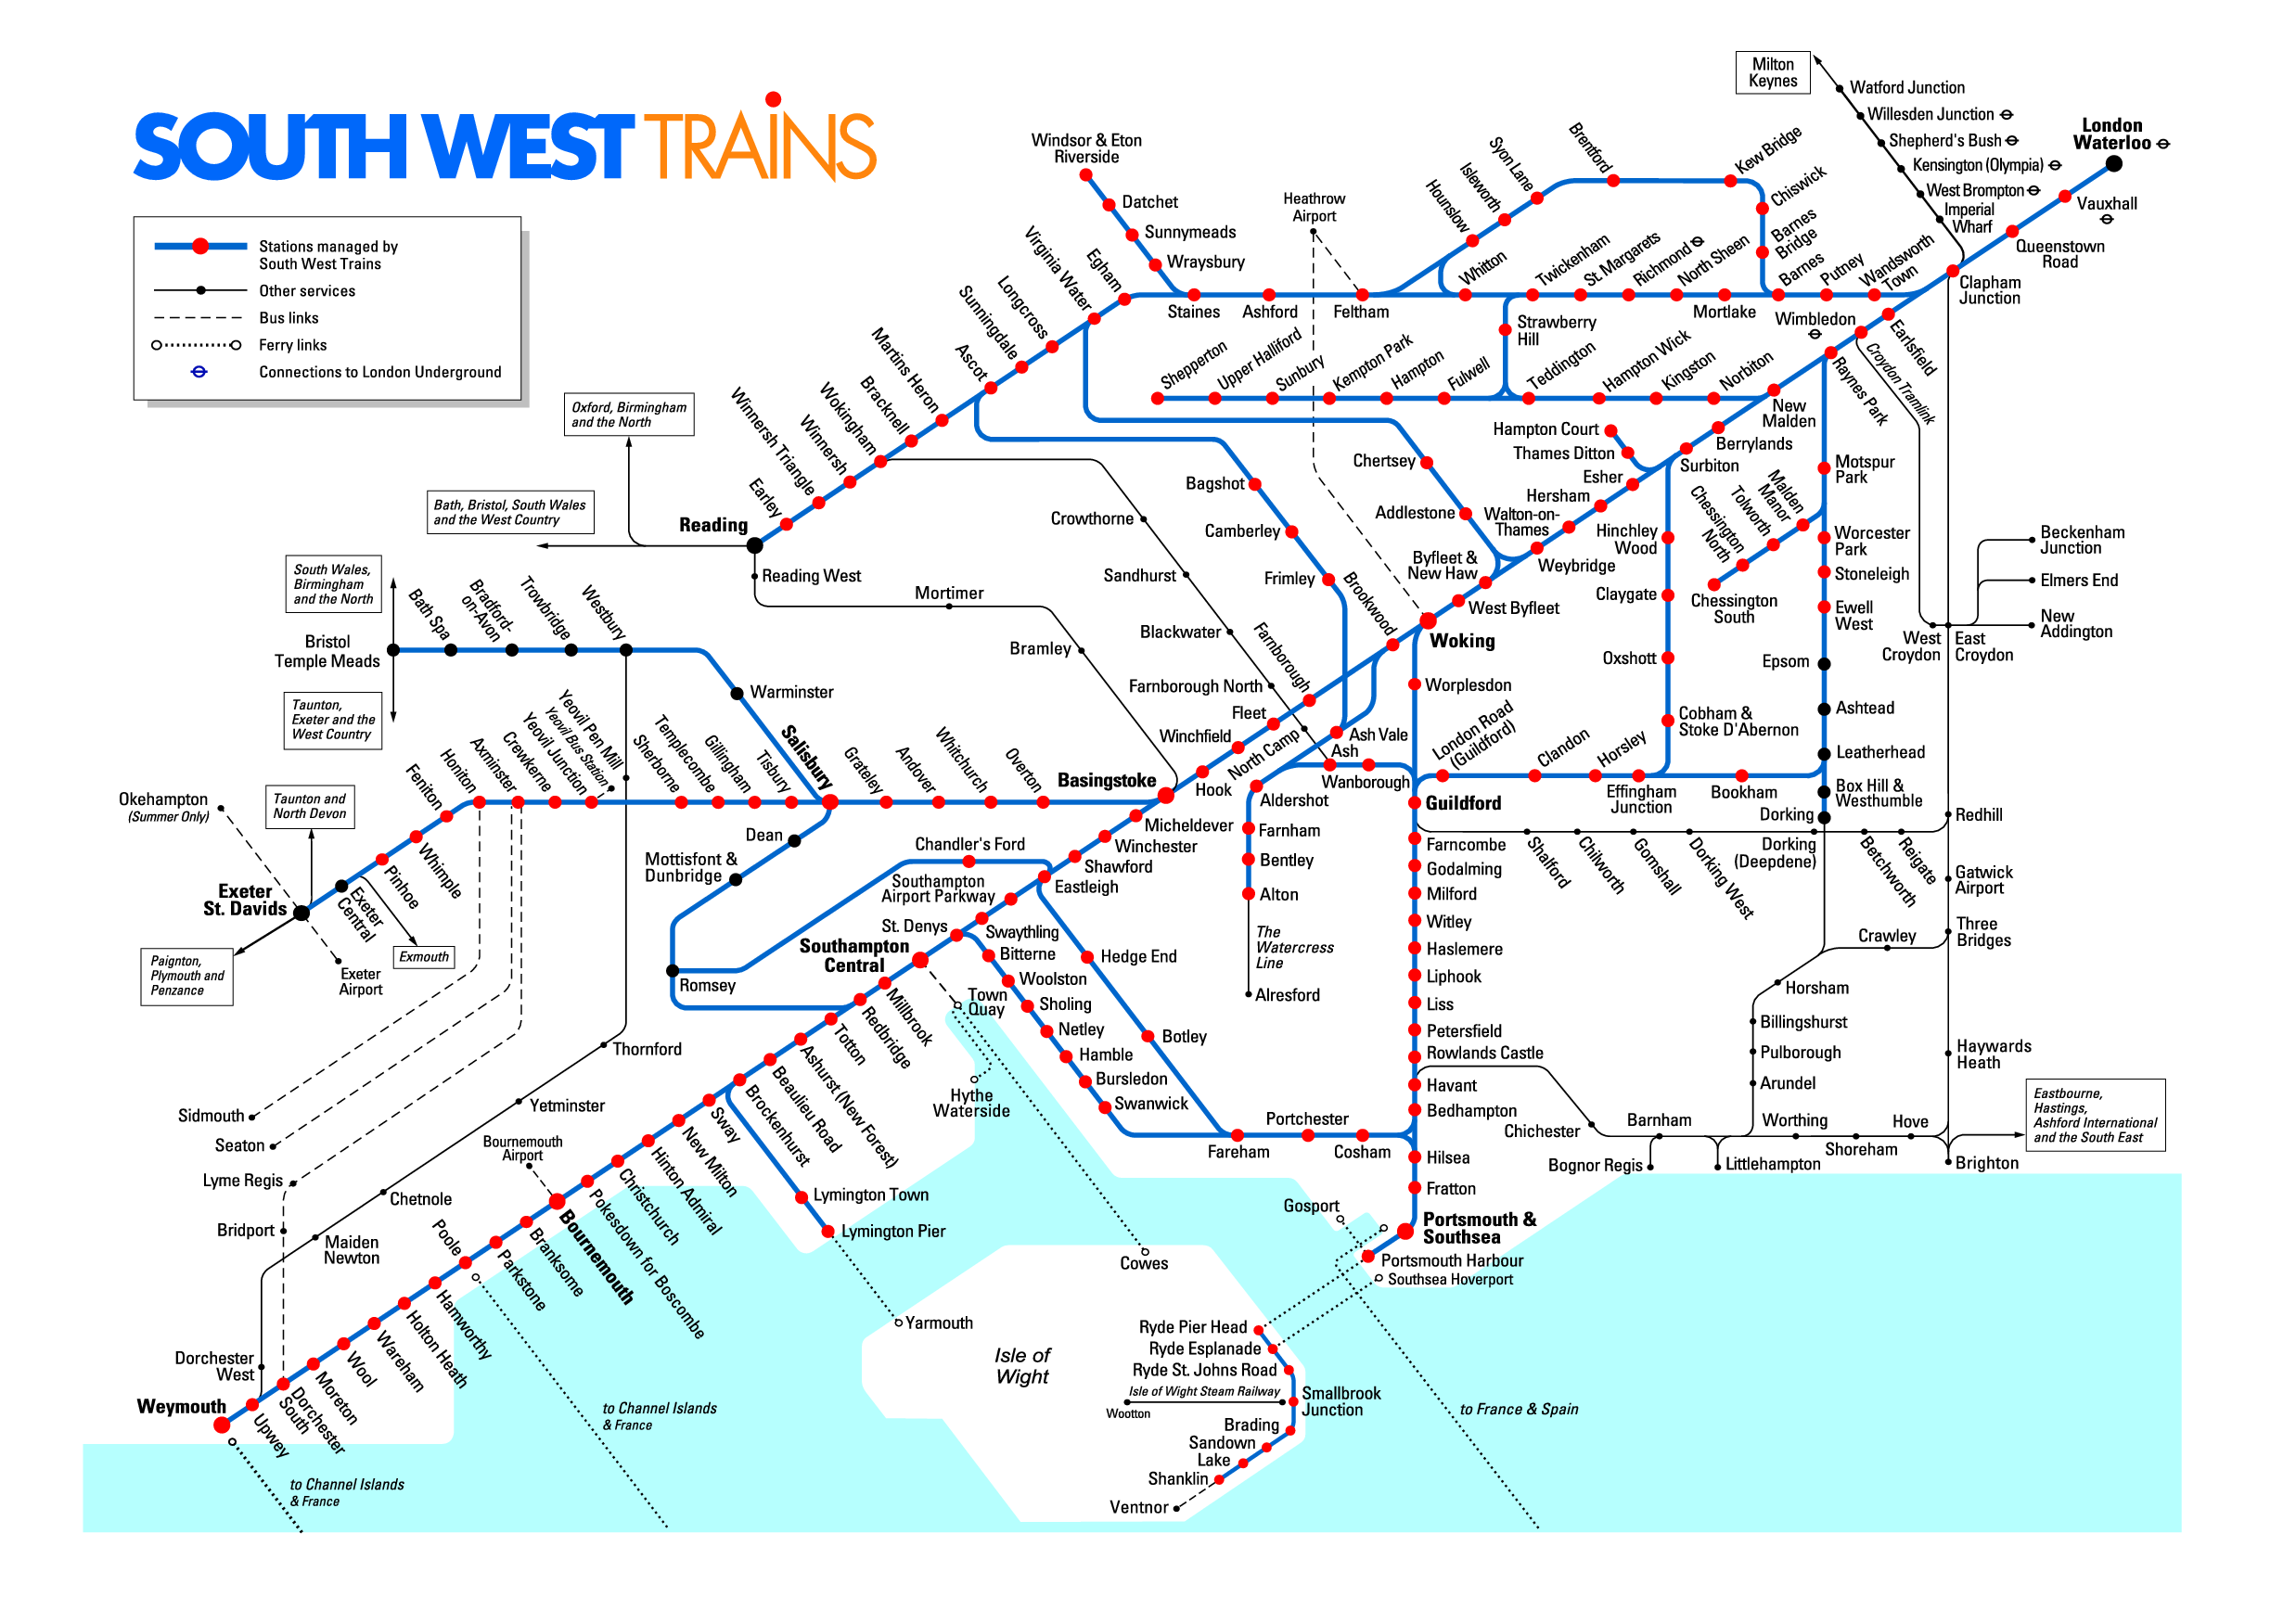 south west trains disruption over christmas